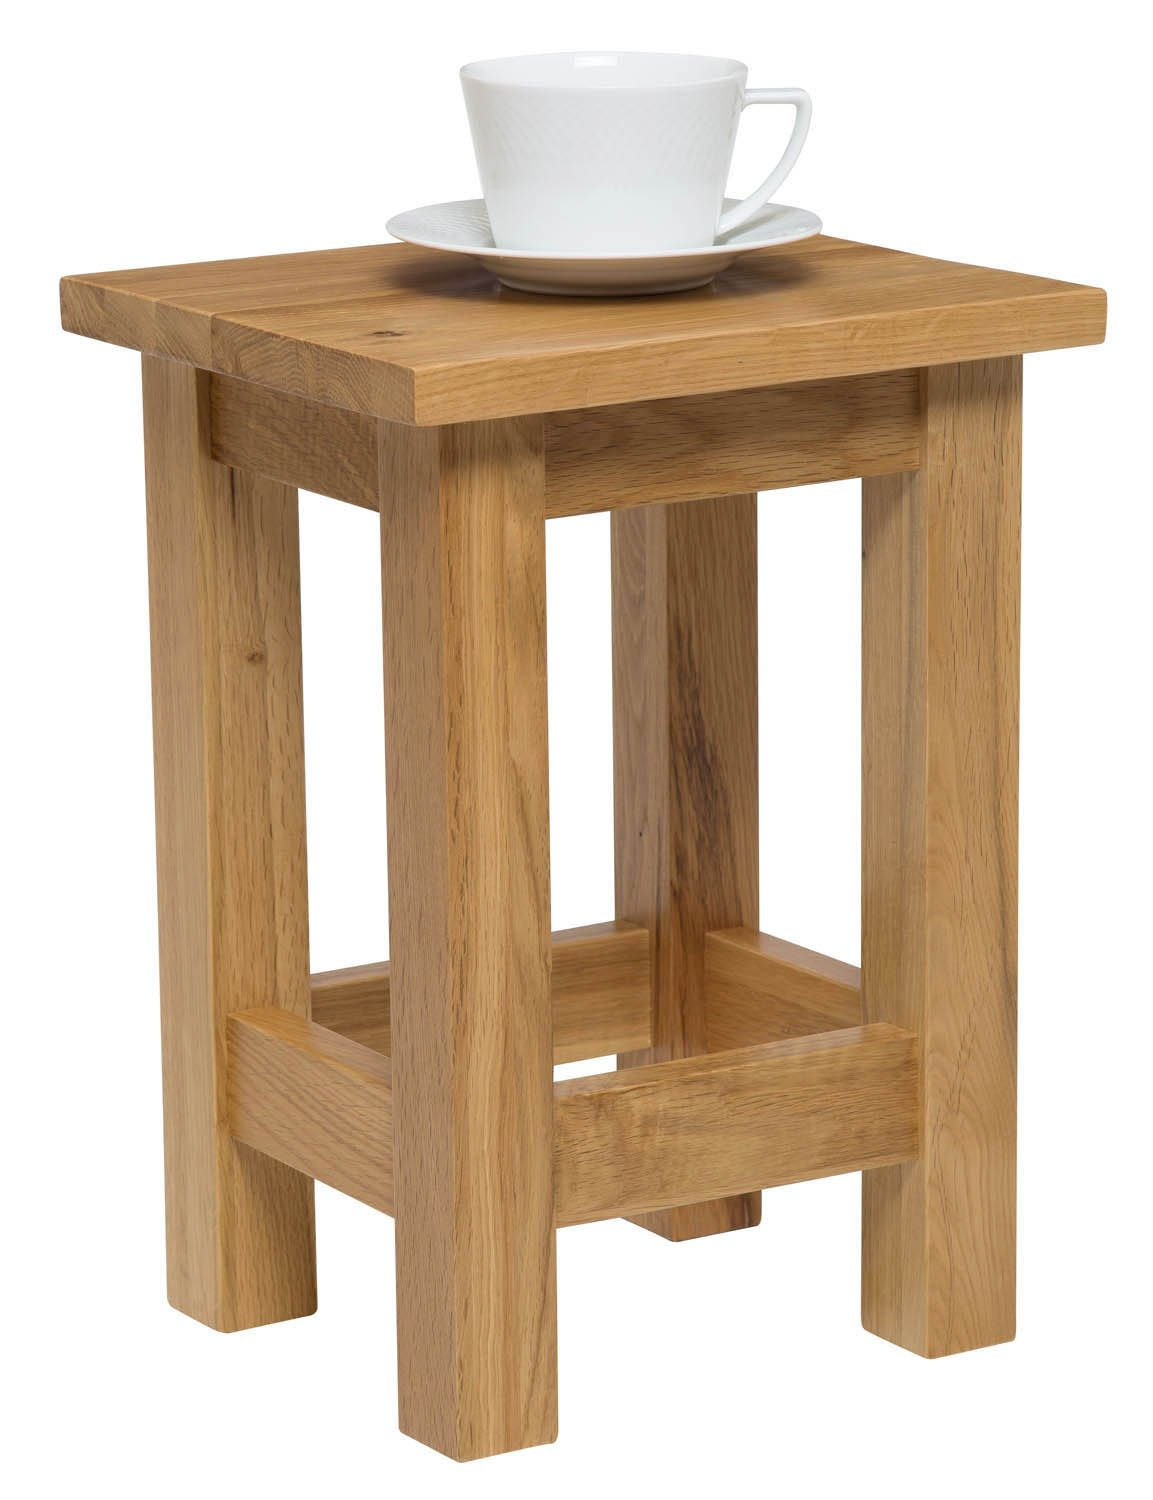 Waverly oak small side table in light finish solid wooden for Small wood coffee table